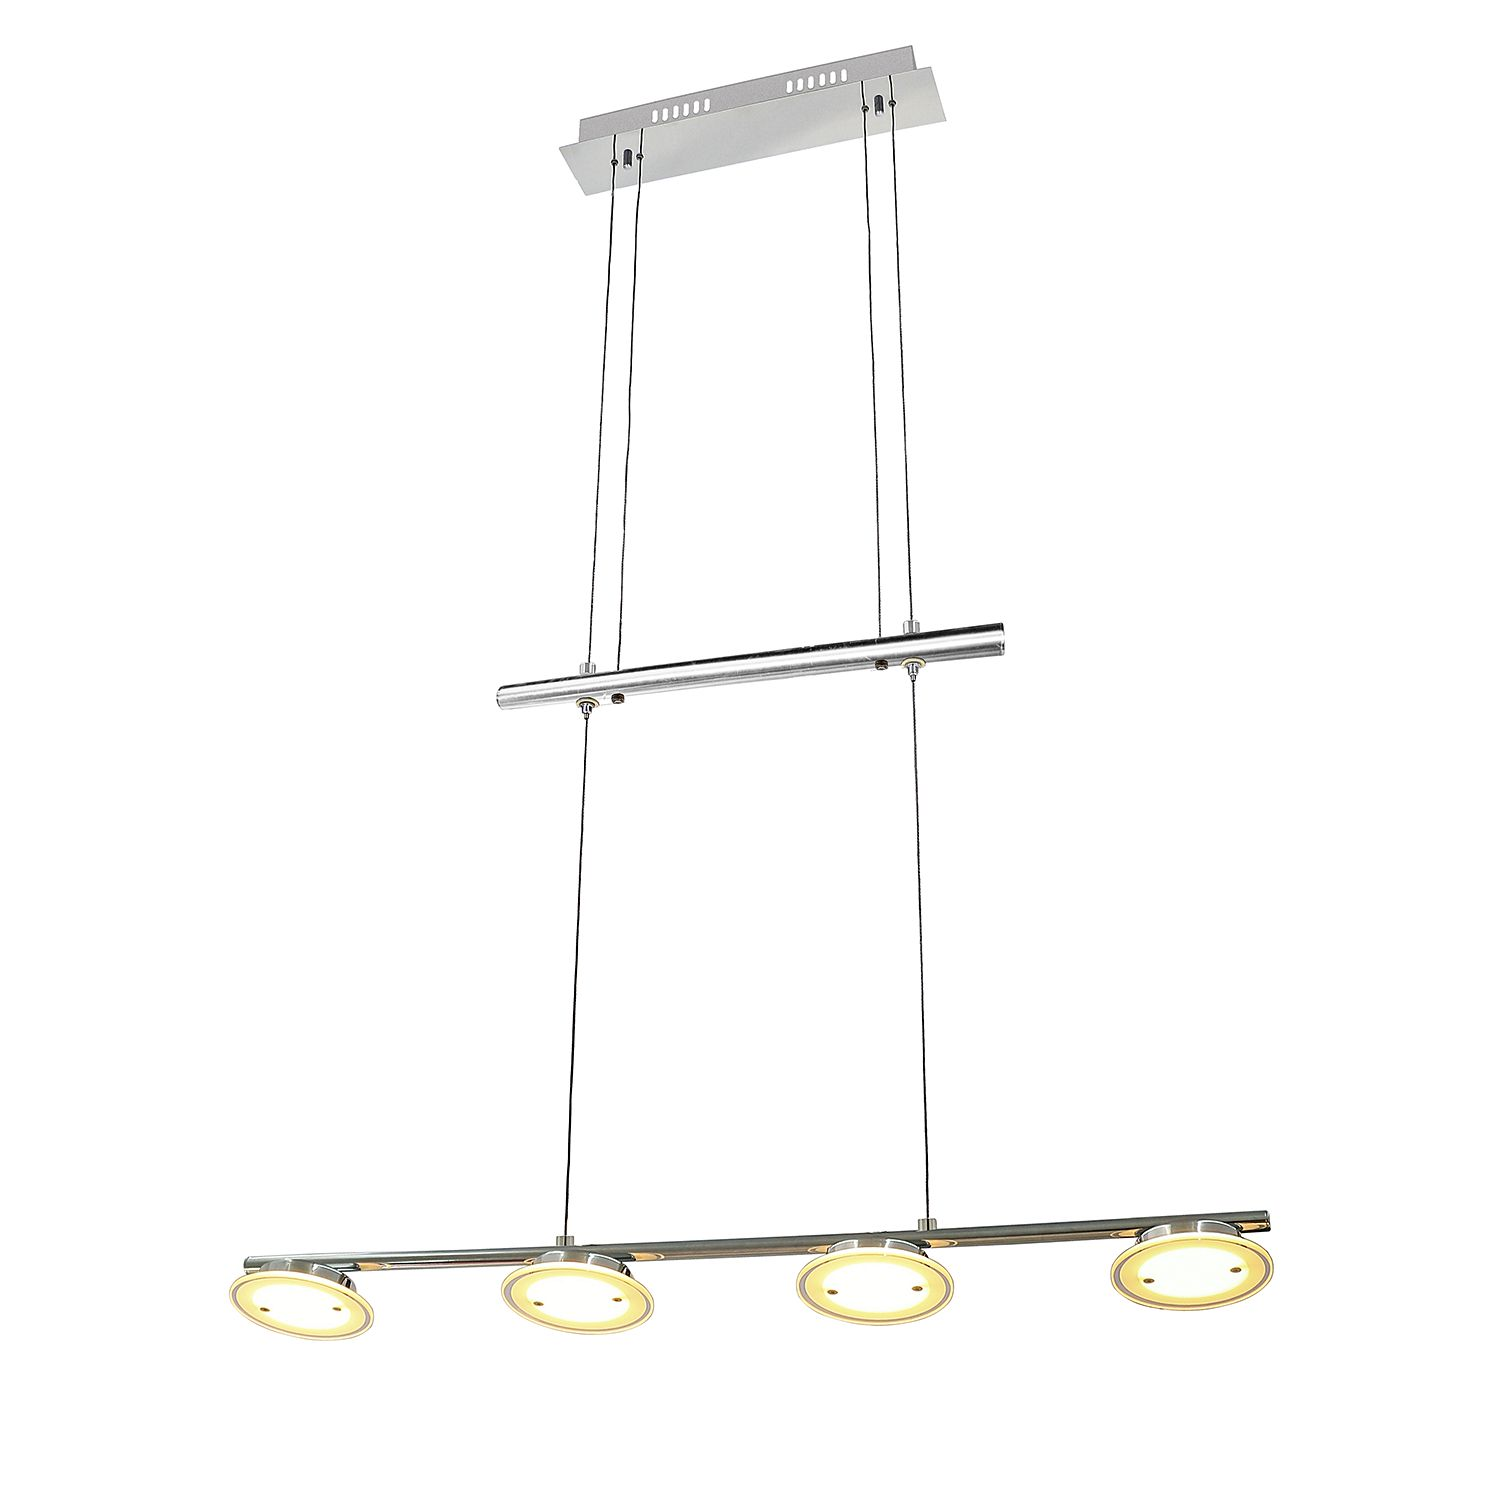 energie  A+, LED-hanglamp Dorena I - glas/metaal - 4 lichtbronnen, Brilliant